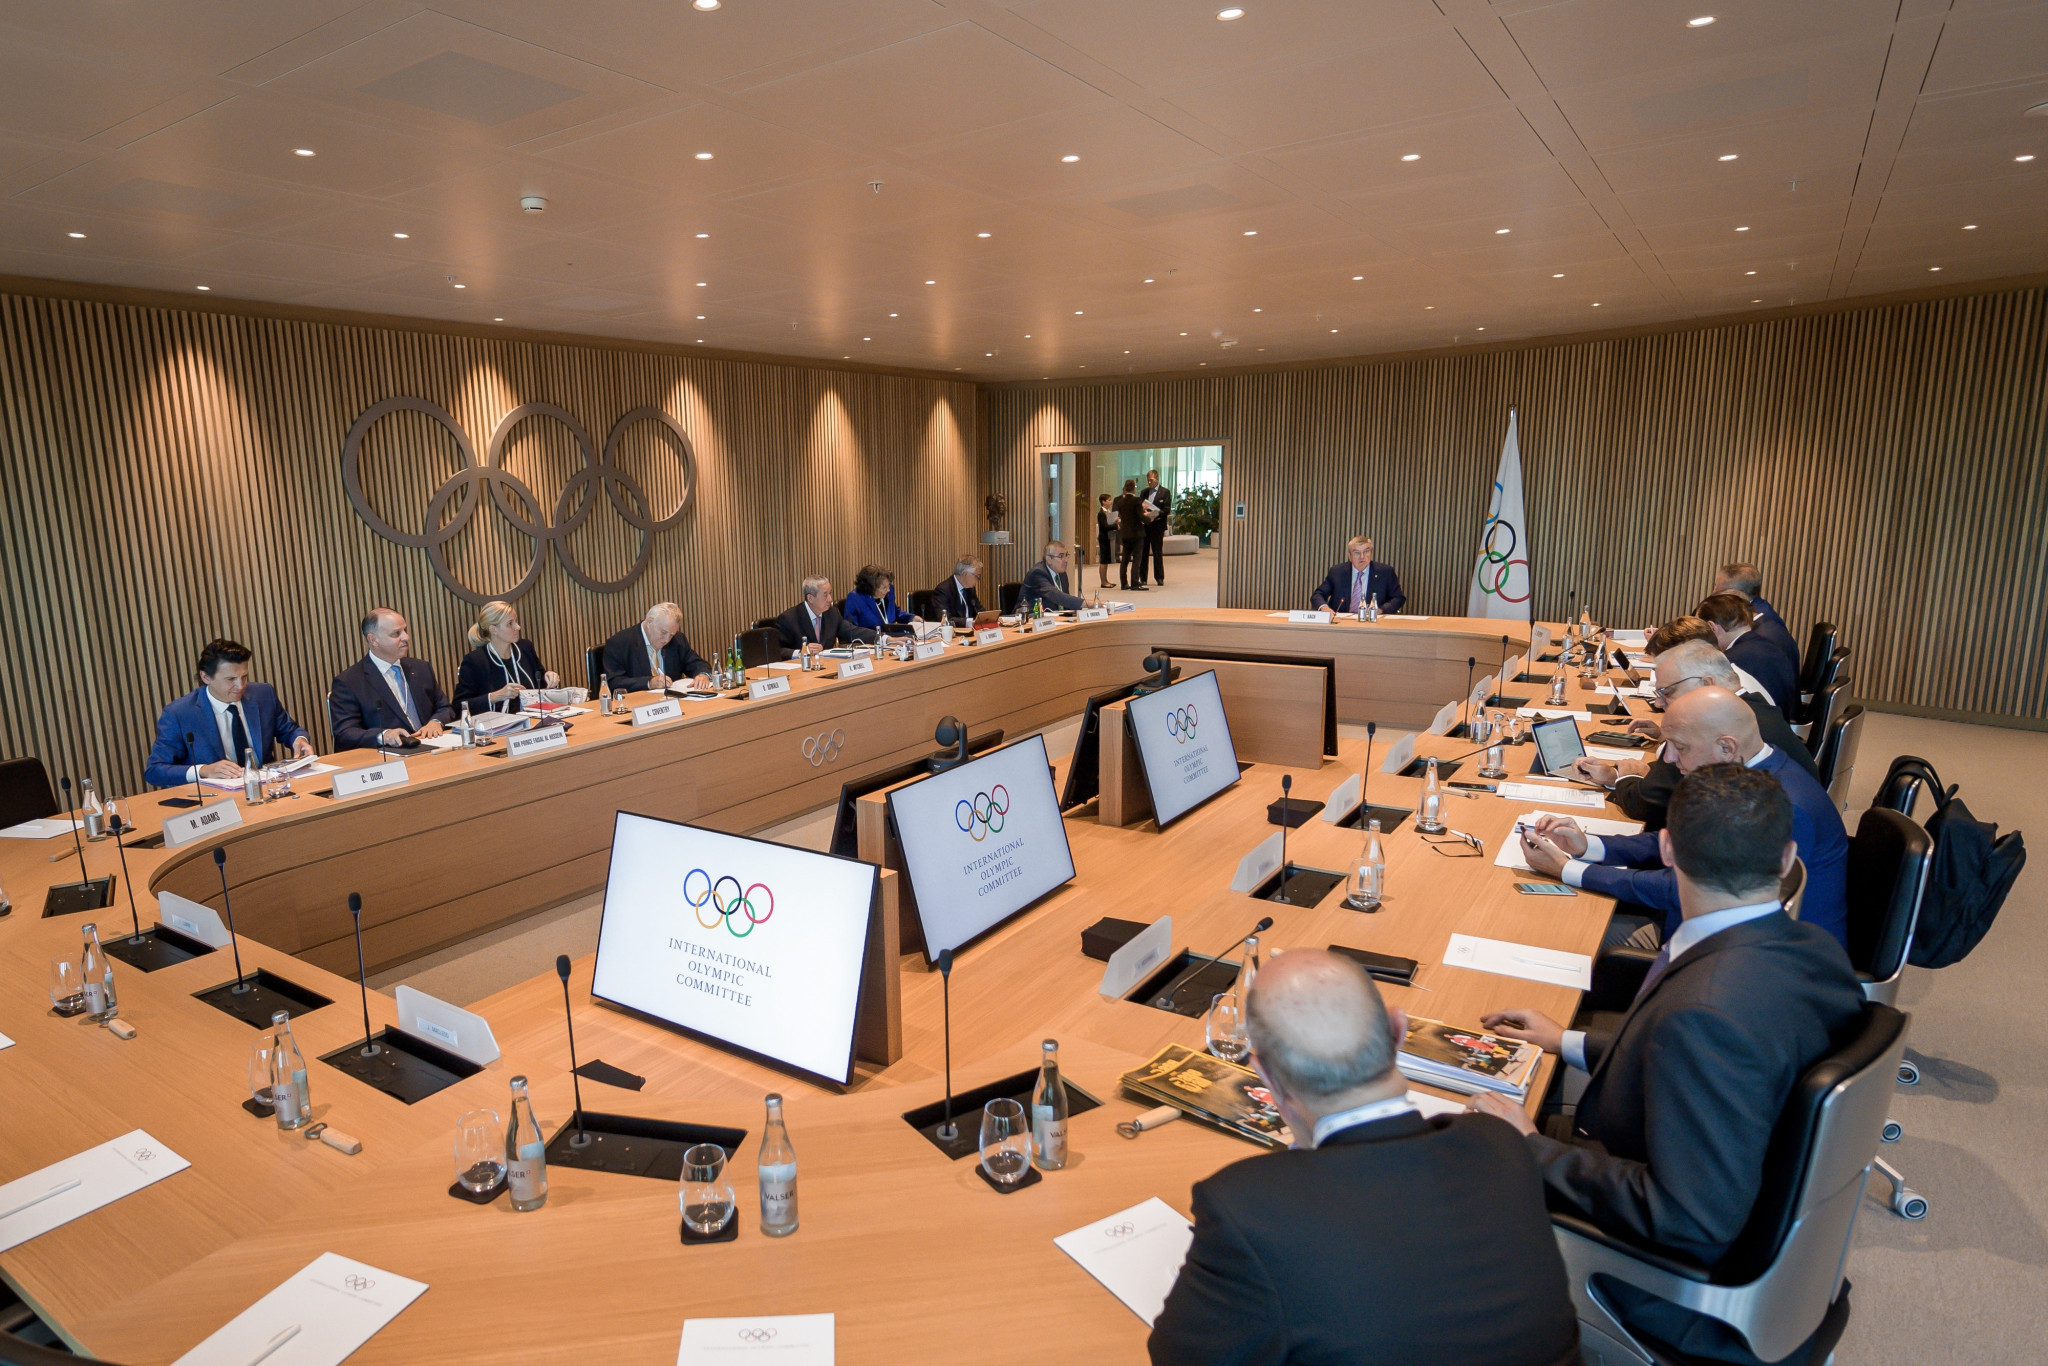 The next IOC Executive Board has been switched to October 16 and is set to be held as an in-person event ©Getty Images